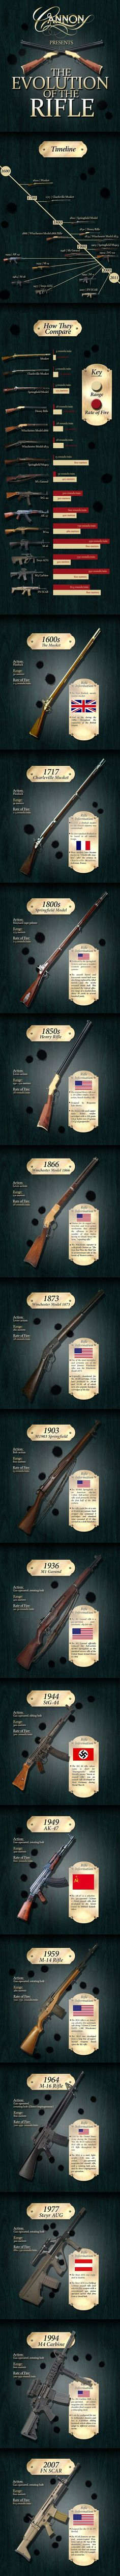 The Evolution Of The Rifle   The History On How It Has Changed & Evolved With Time & Technology By Survival Life http://survivallife.com/2014/07/01/evolution-of-the-rifle/